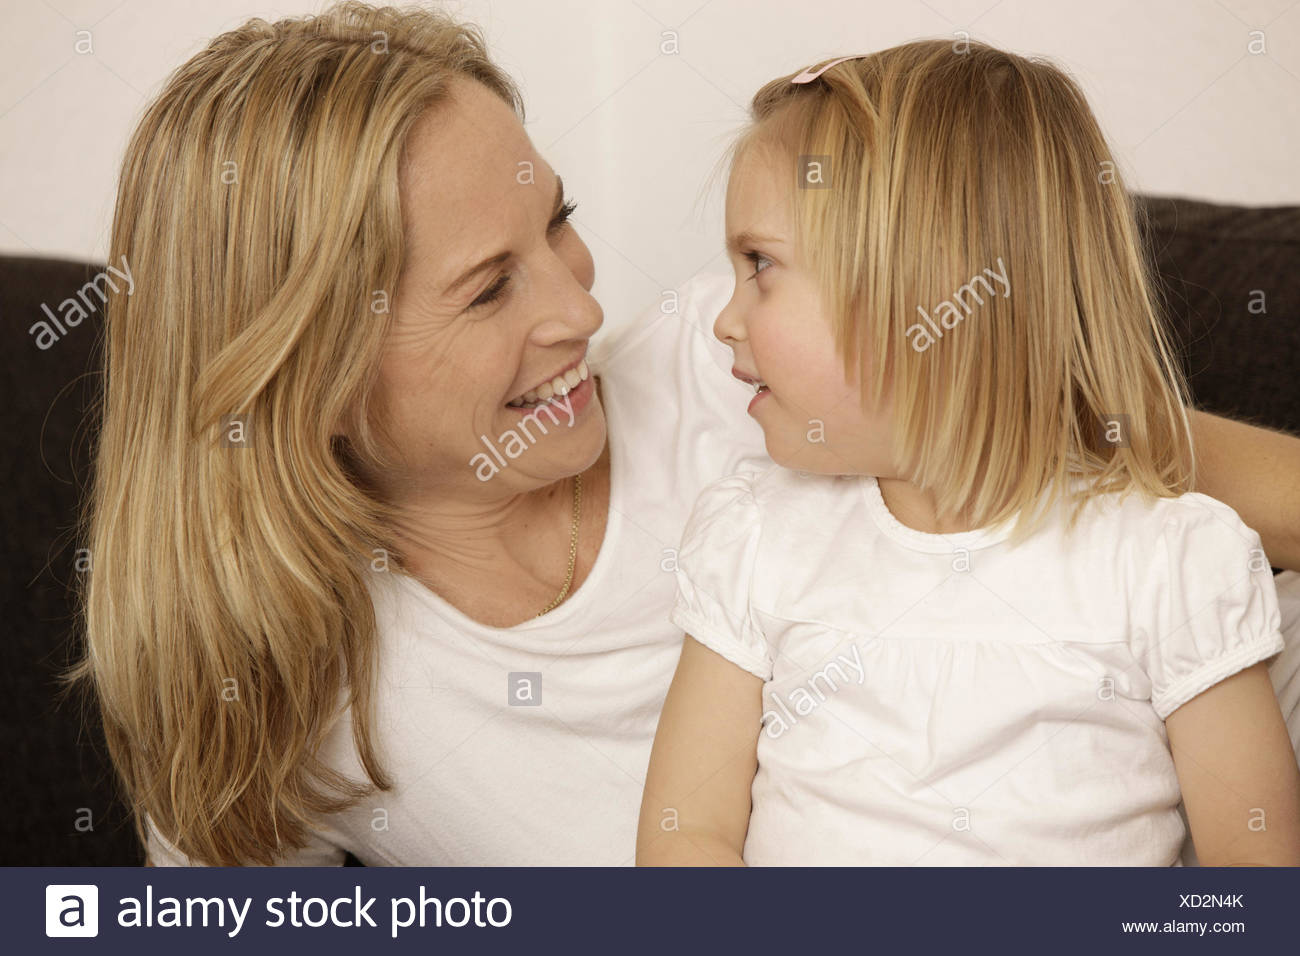 Nut, subsidiary, eye contact, smile, portrait, model released, people, woman, child, girl, blond, side view, suture, affection, happy, motherly love, - Stock Image